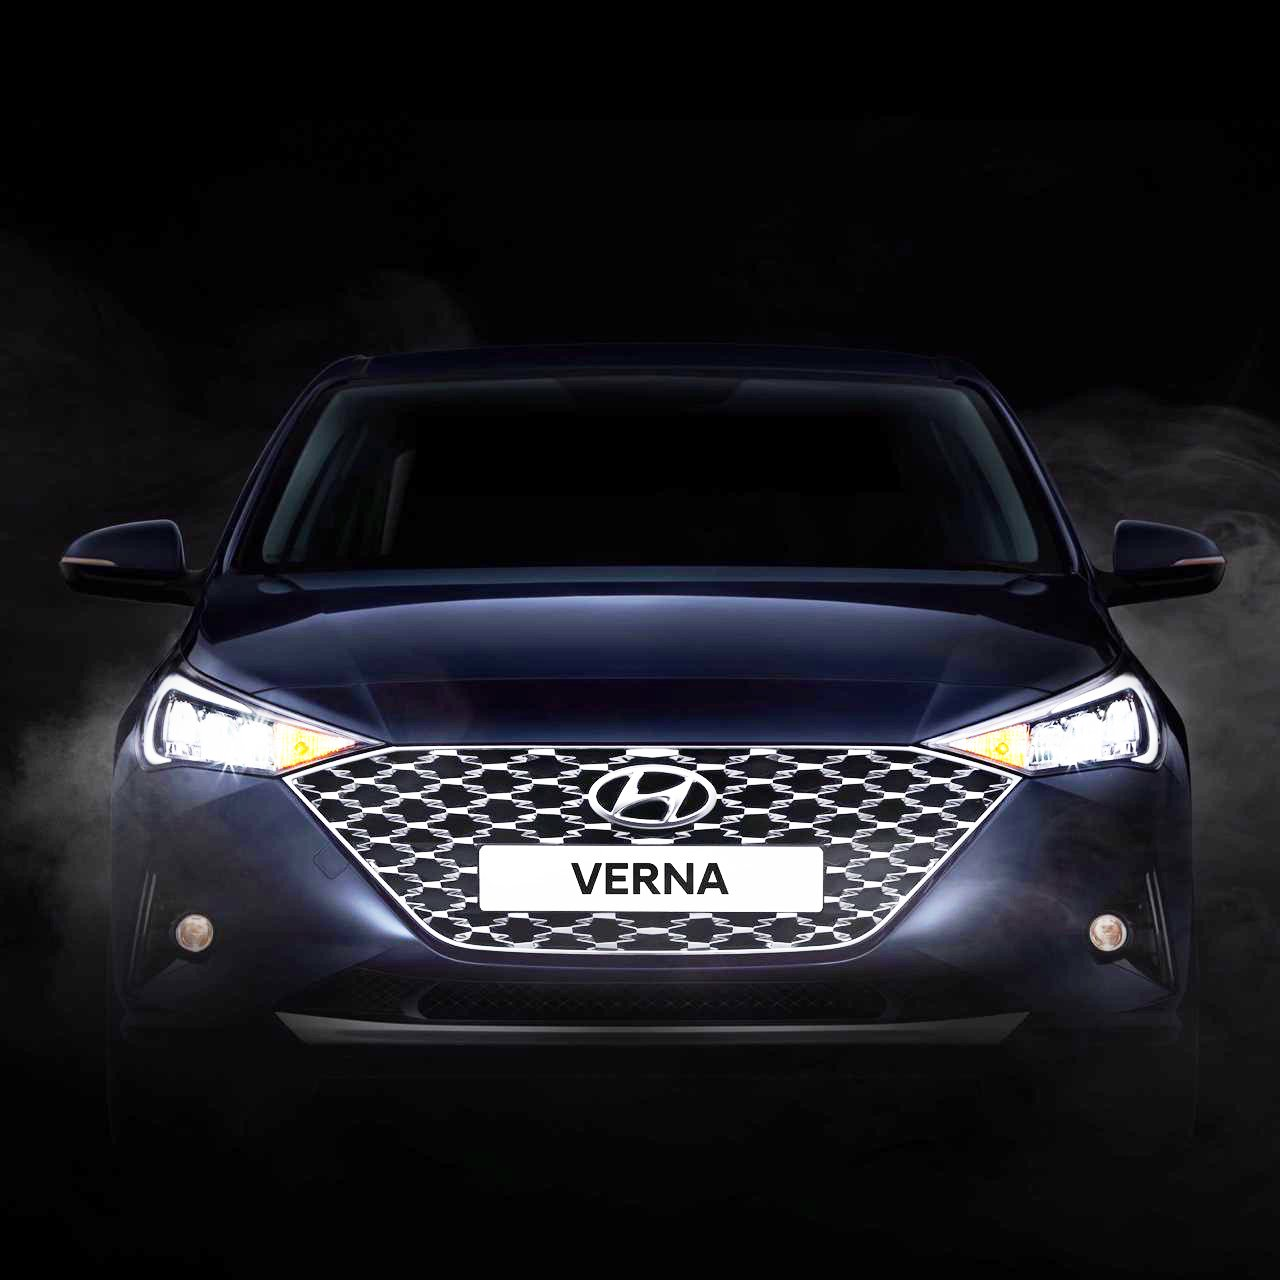 2020 Hyundai Verna Facelift Gets 1.0L Turbo Petrol with 7-DCT, Almost Revealed Thru Official Pics